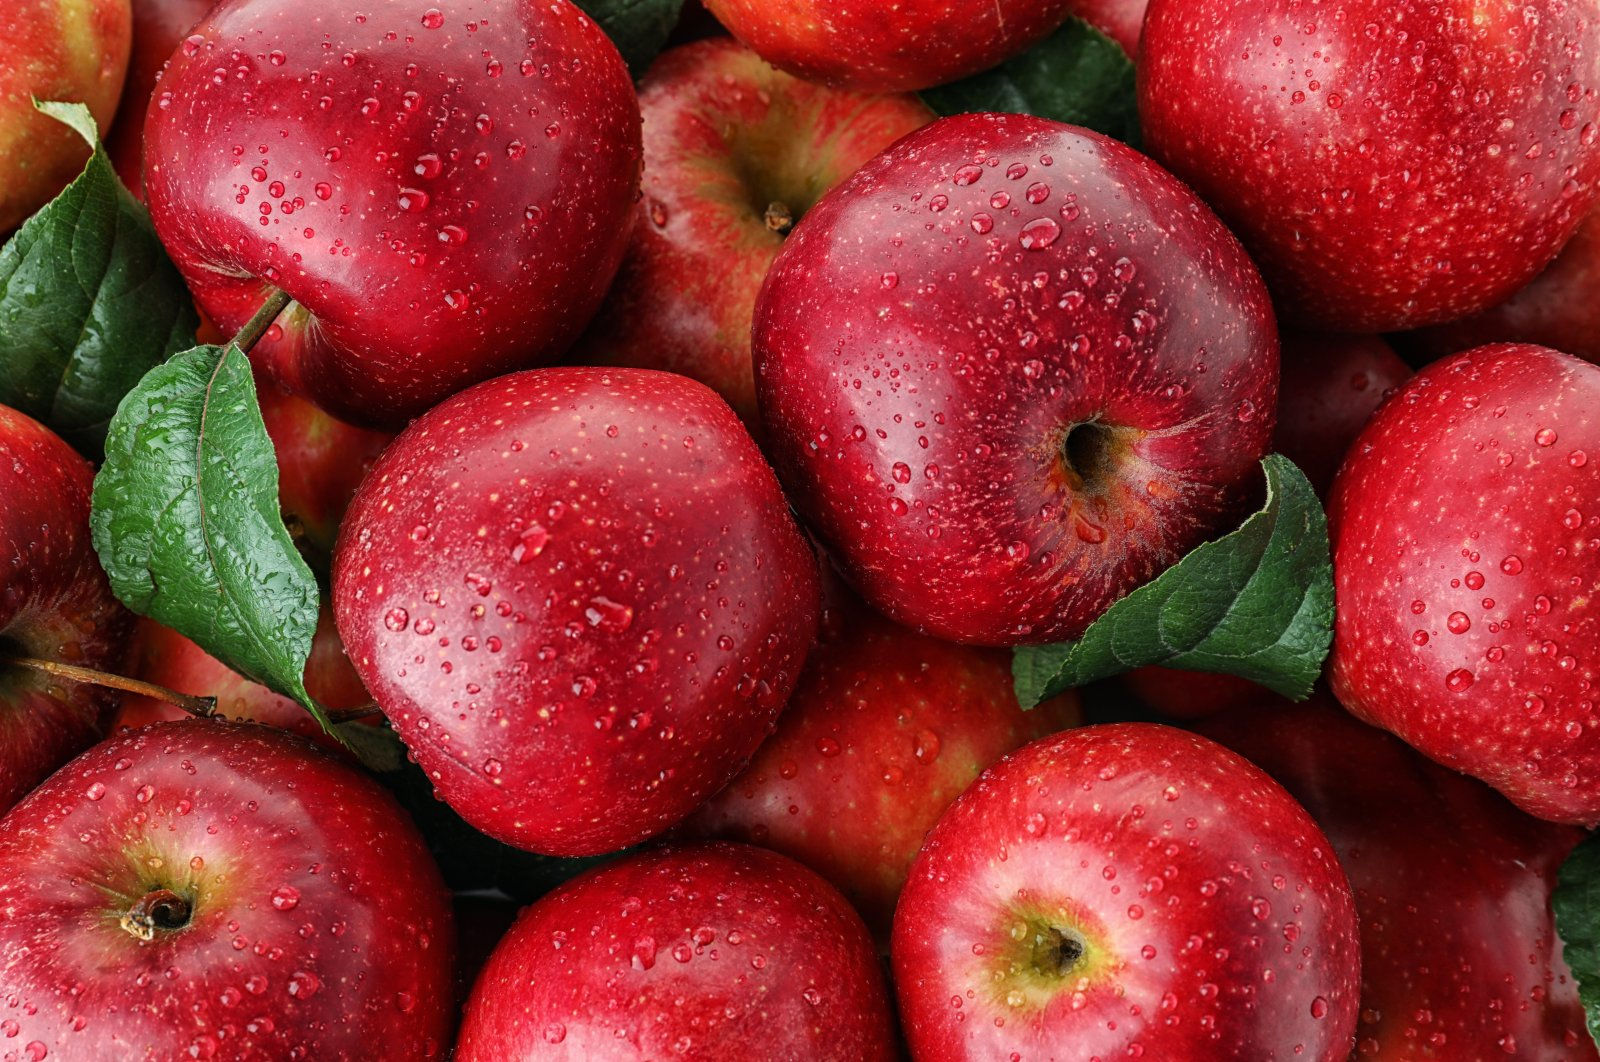 Turkey exported $90 million worth of apples in 2019. (File Photo)